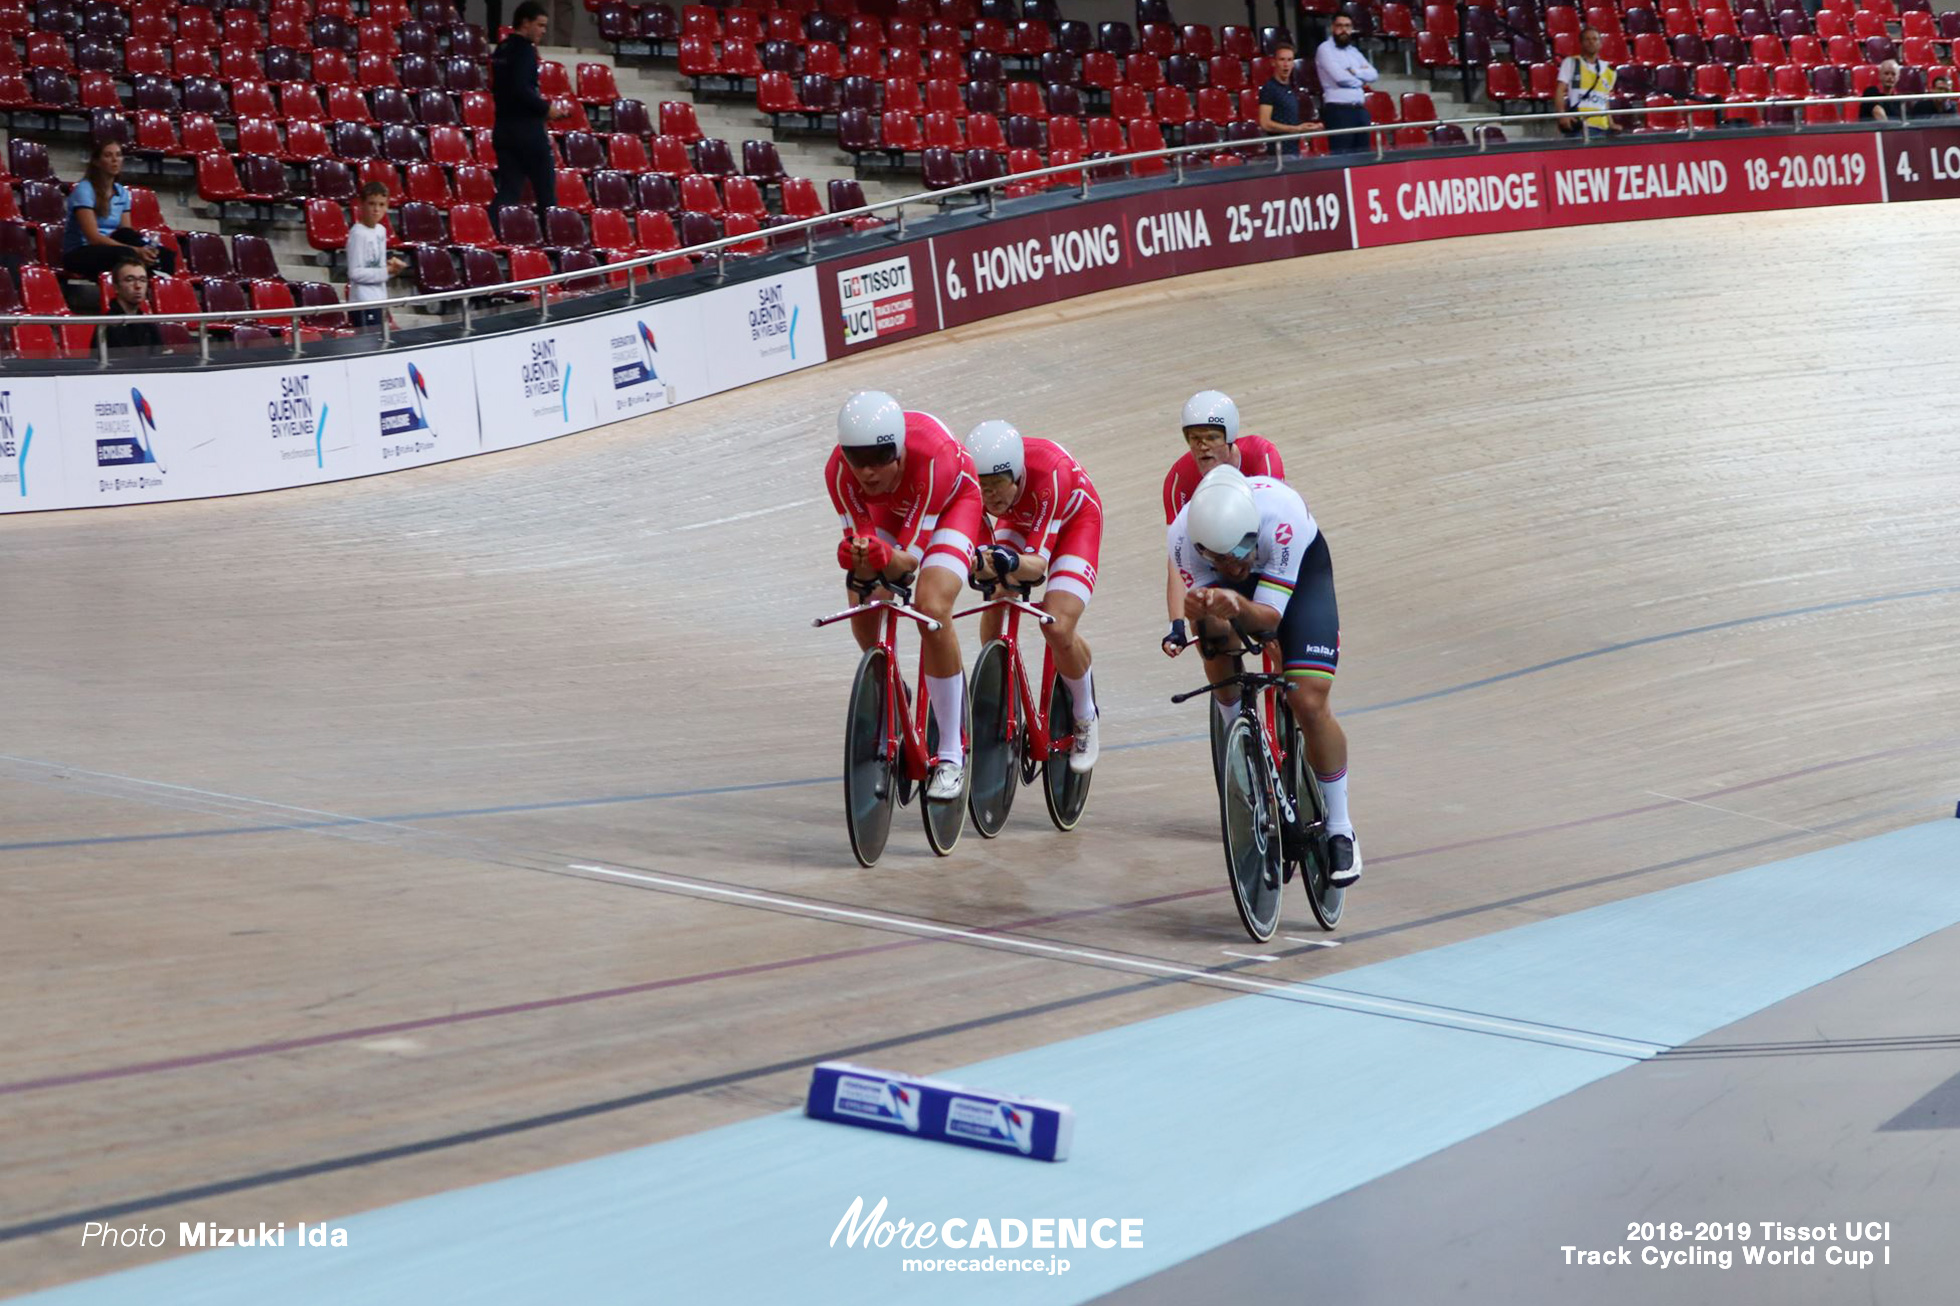 2018-2019 TRACK CYCLING WORLD CUP I Men's Team Pursuit